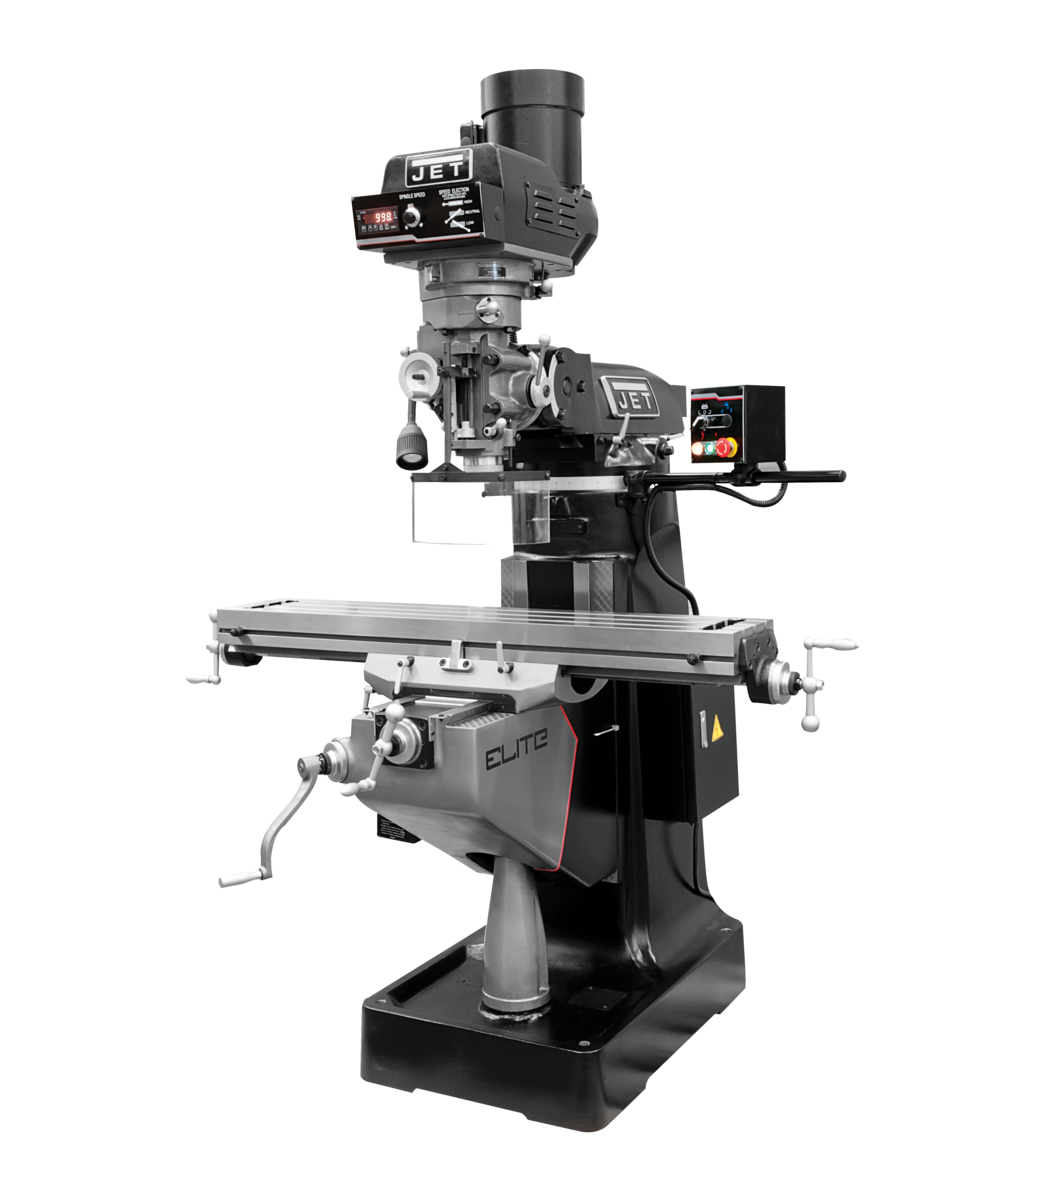 EVS-949 Mill with 2-Axis ACU-RITE 303 DRO and Servo X-Axis Powerfeed